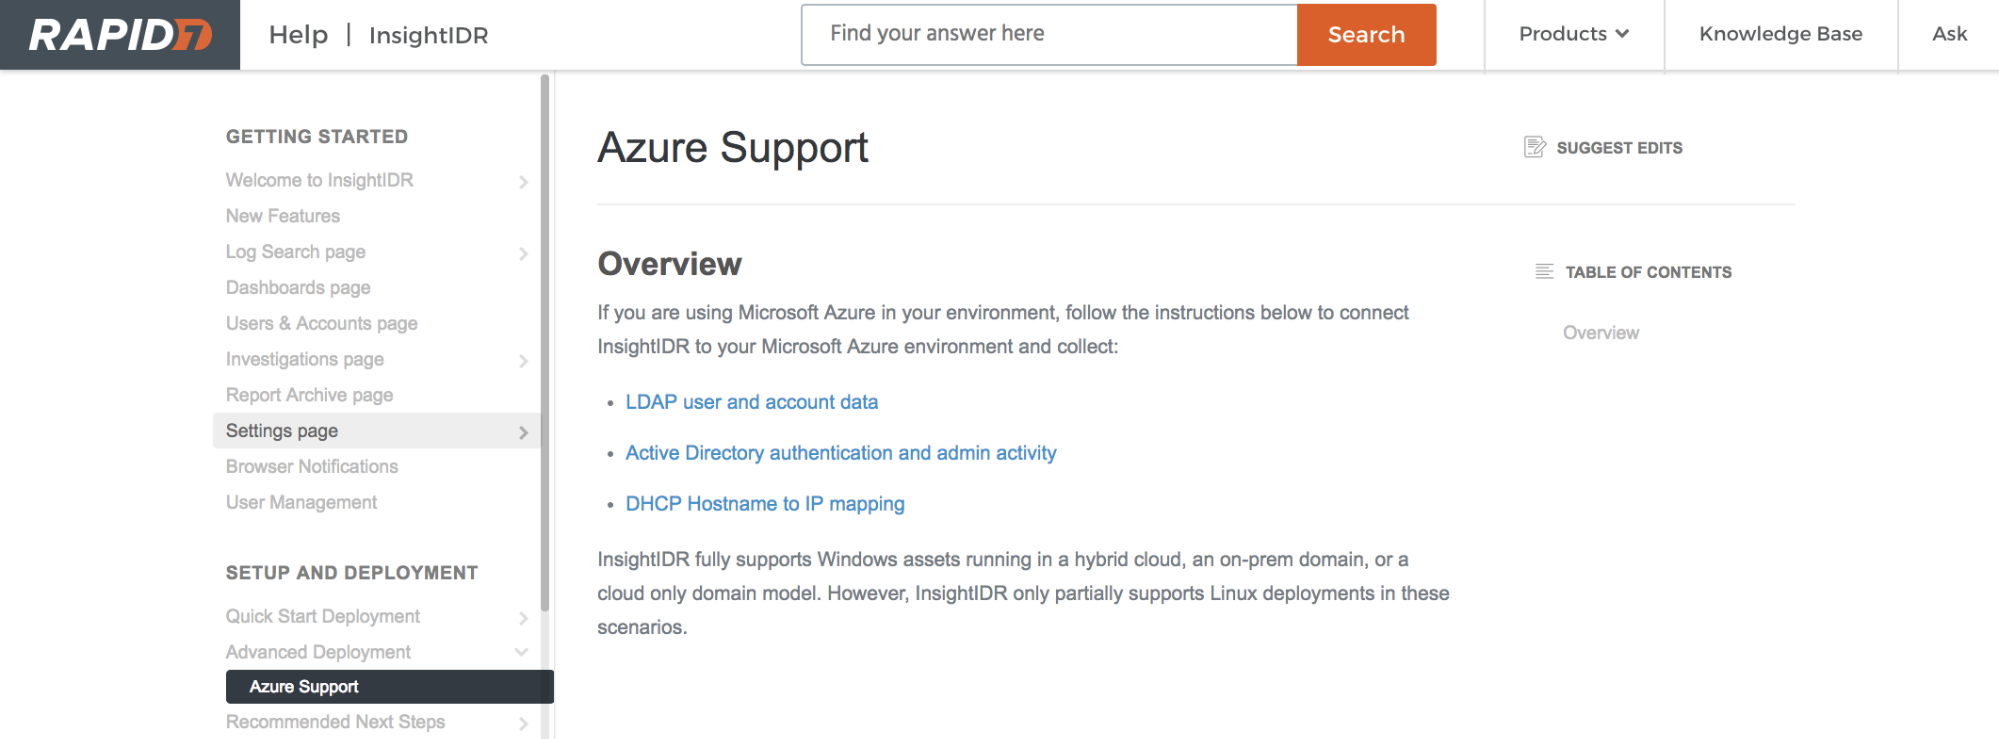 Azure Security Center and Active Directory Integrate with Rapid7